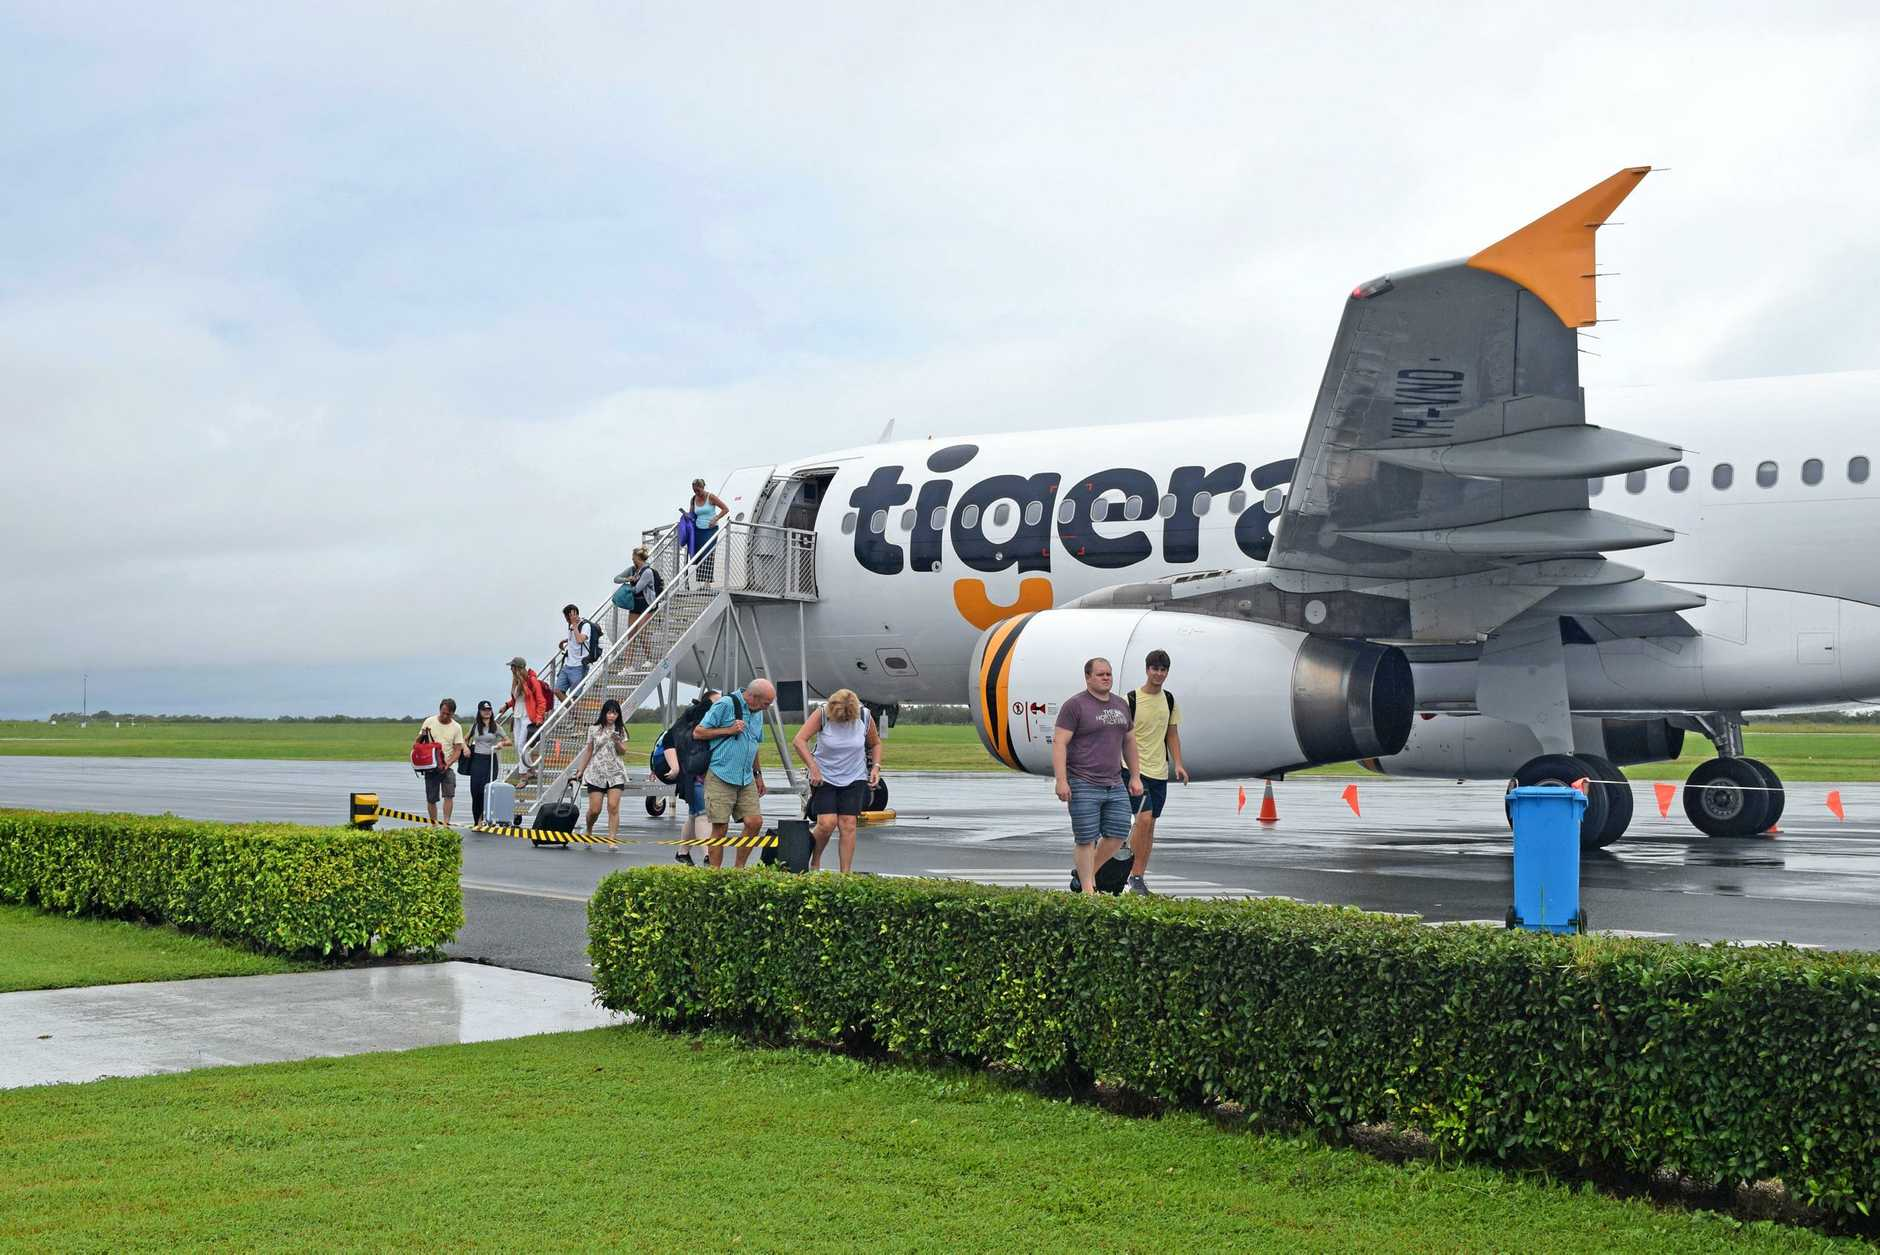 Tiger is offering its $1 return airfare deal.